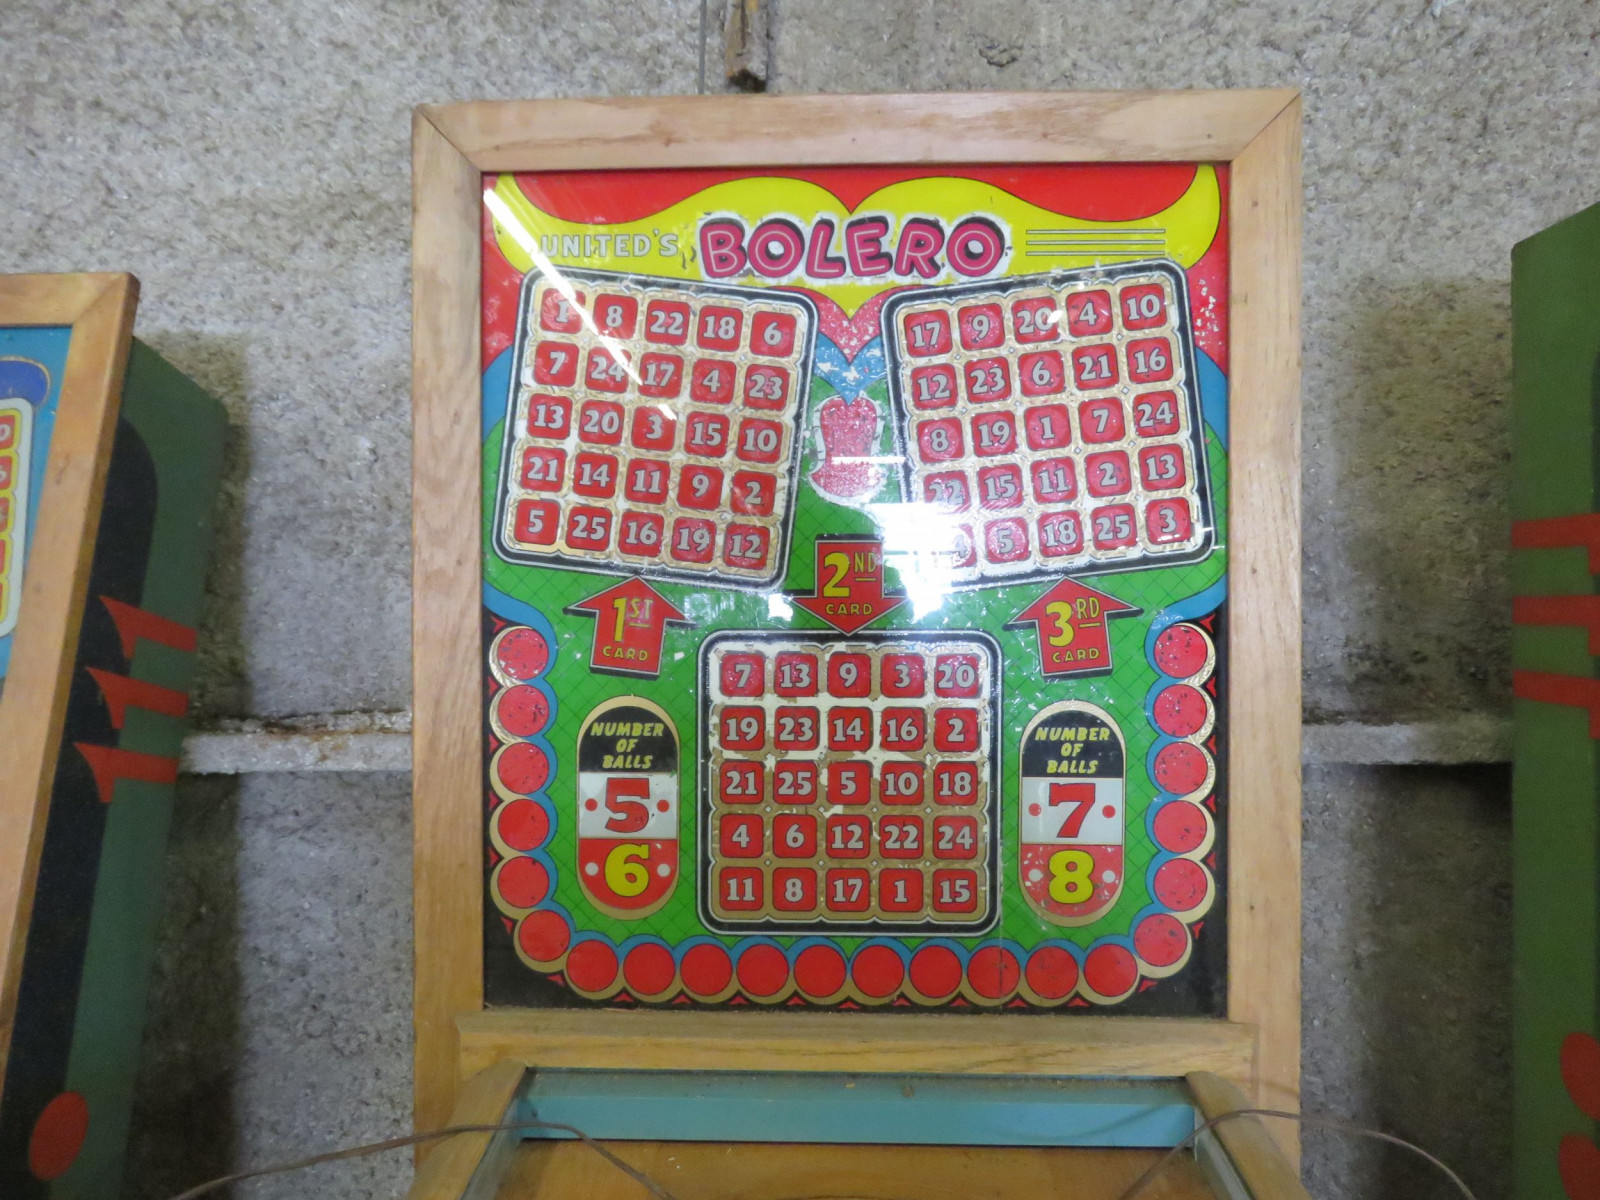 Vintage Bolero Pinball Machine by United - Image 3